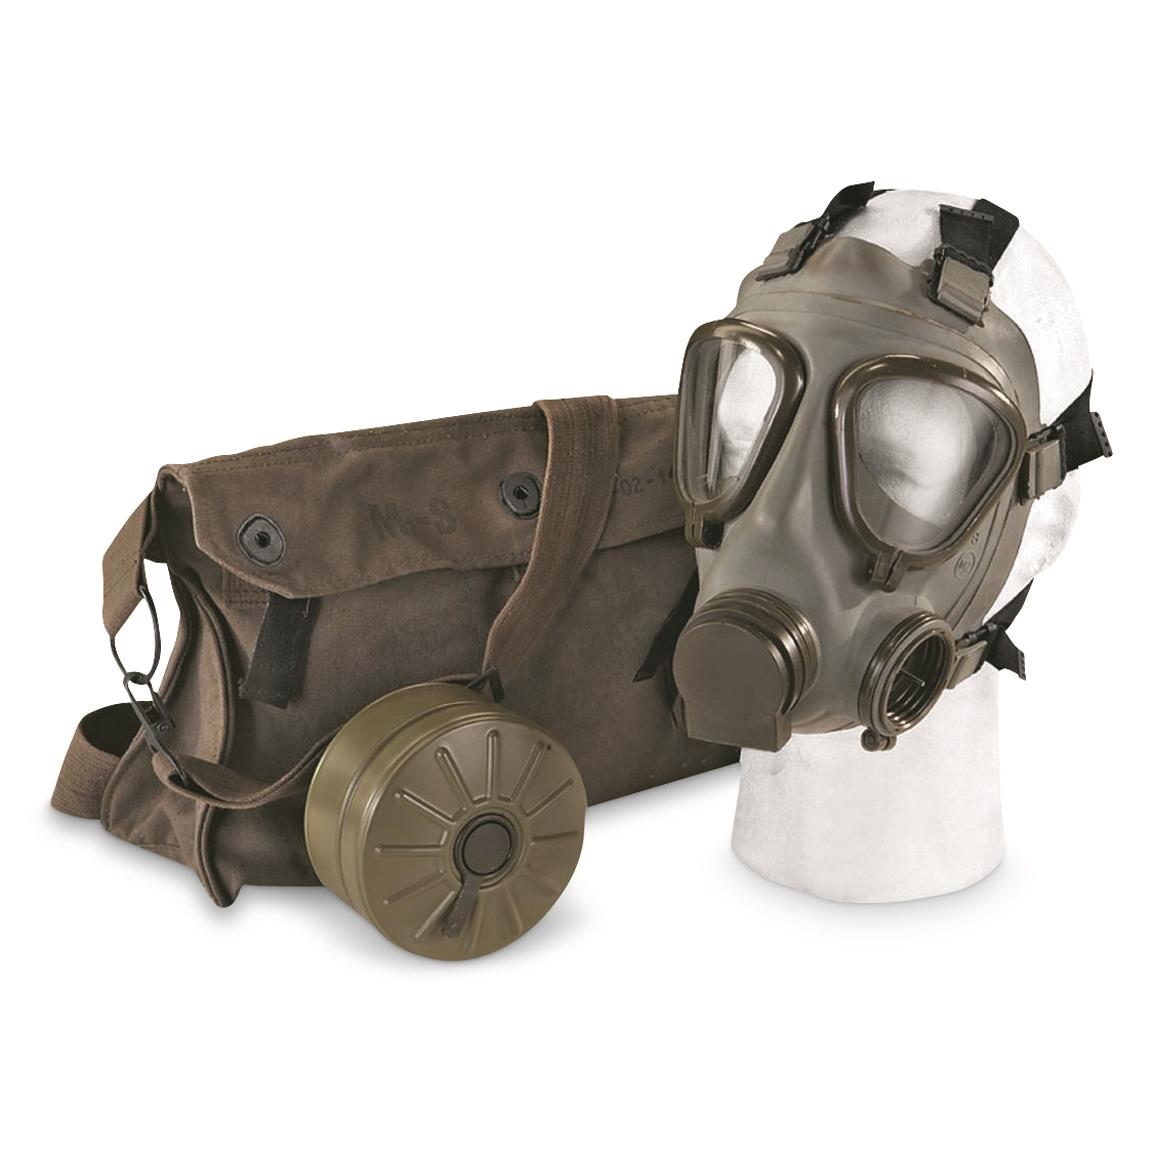 Serbian Military Surplus M2 Gas Mask with Bag, New